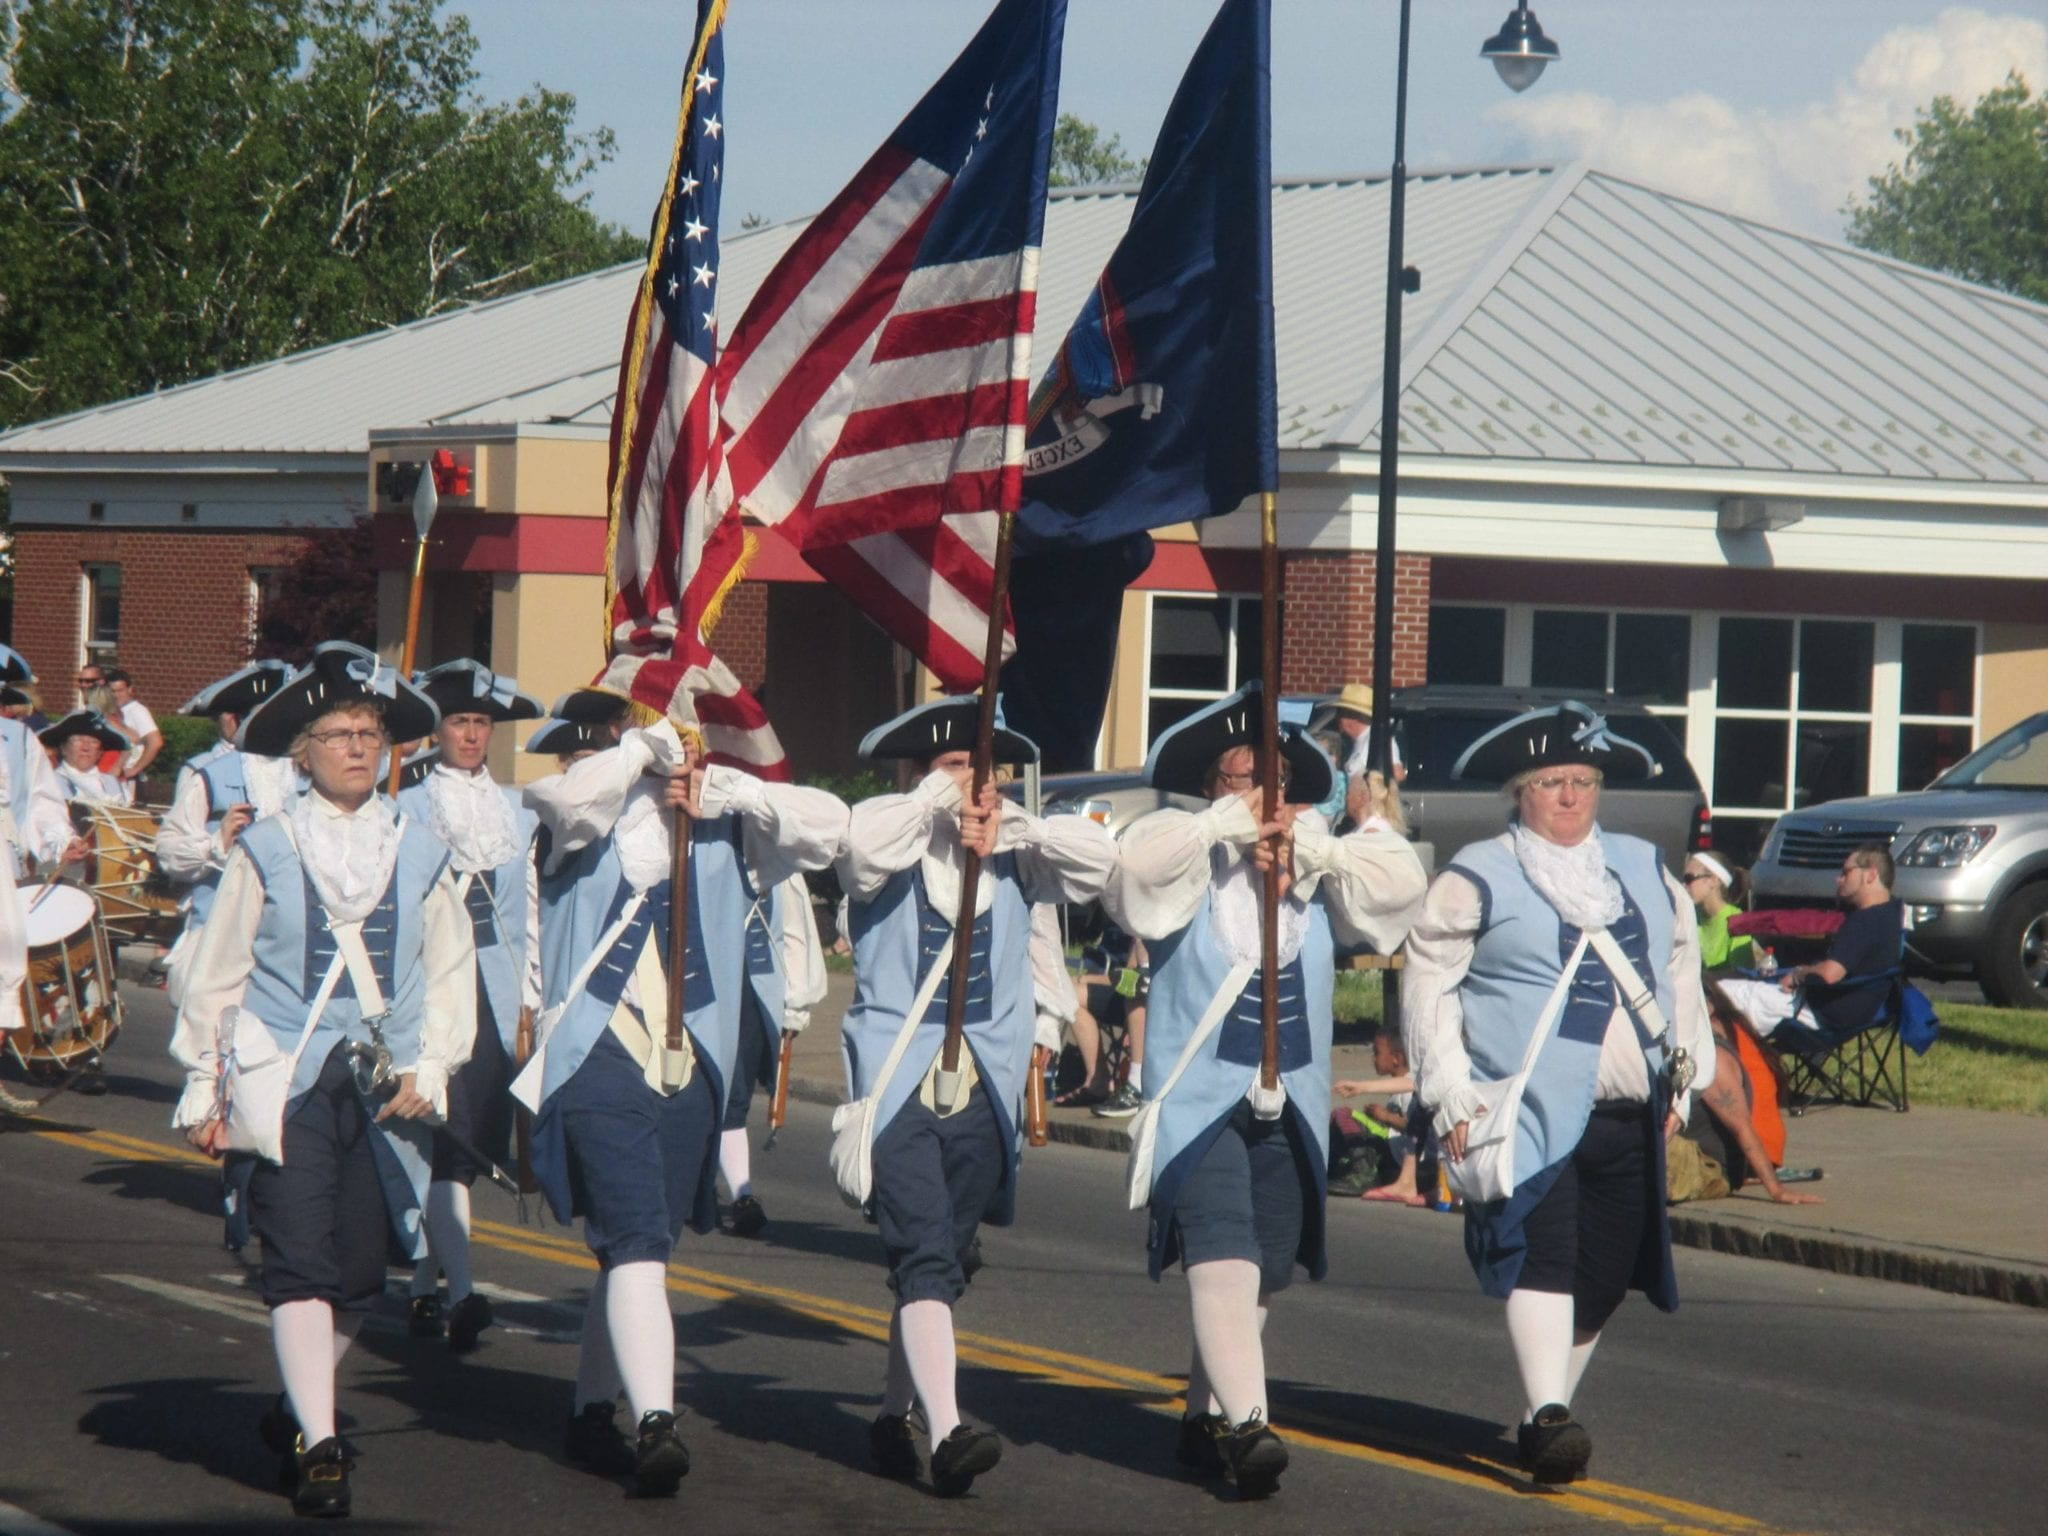 B'ville announces Parade Marshal, President for a Day